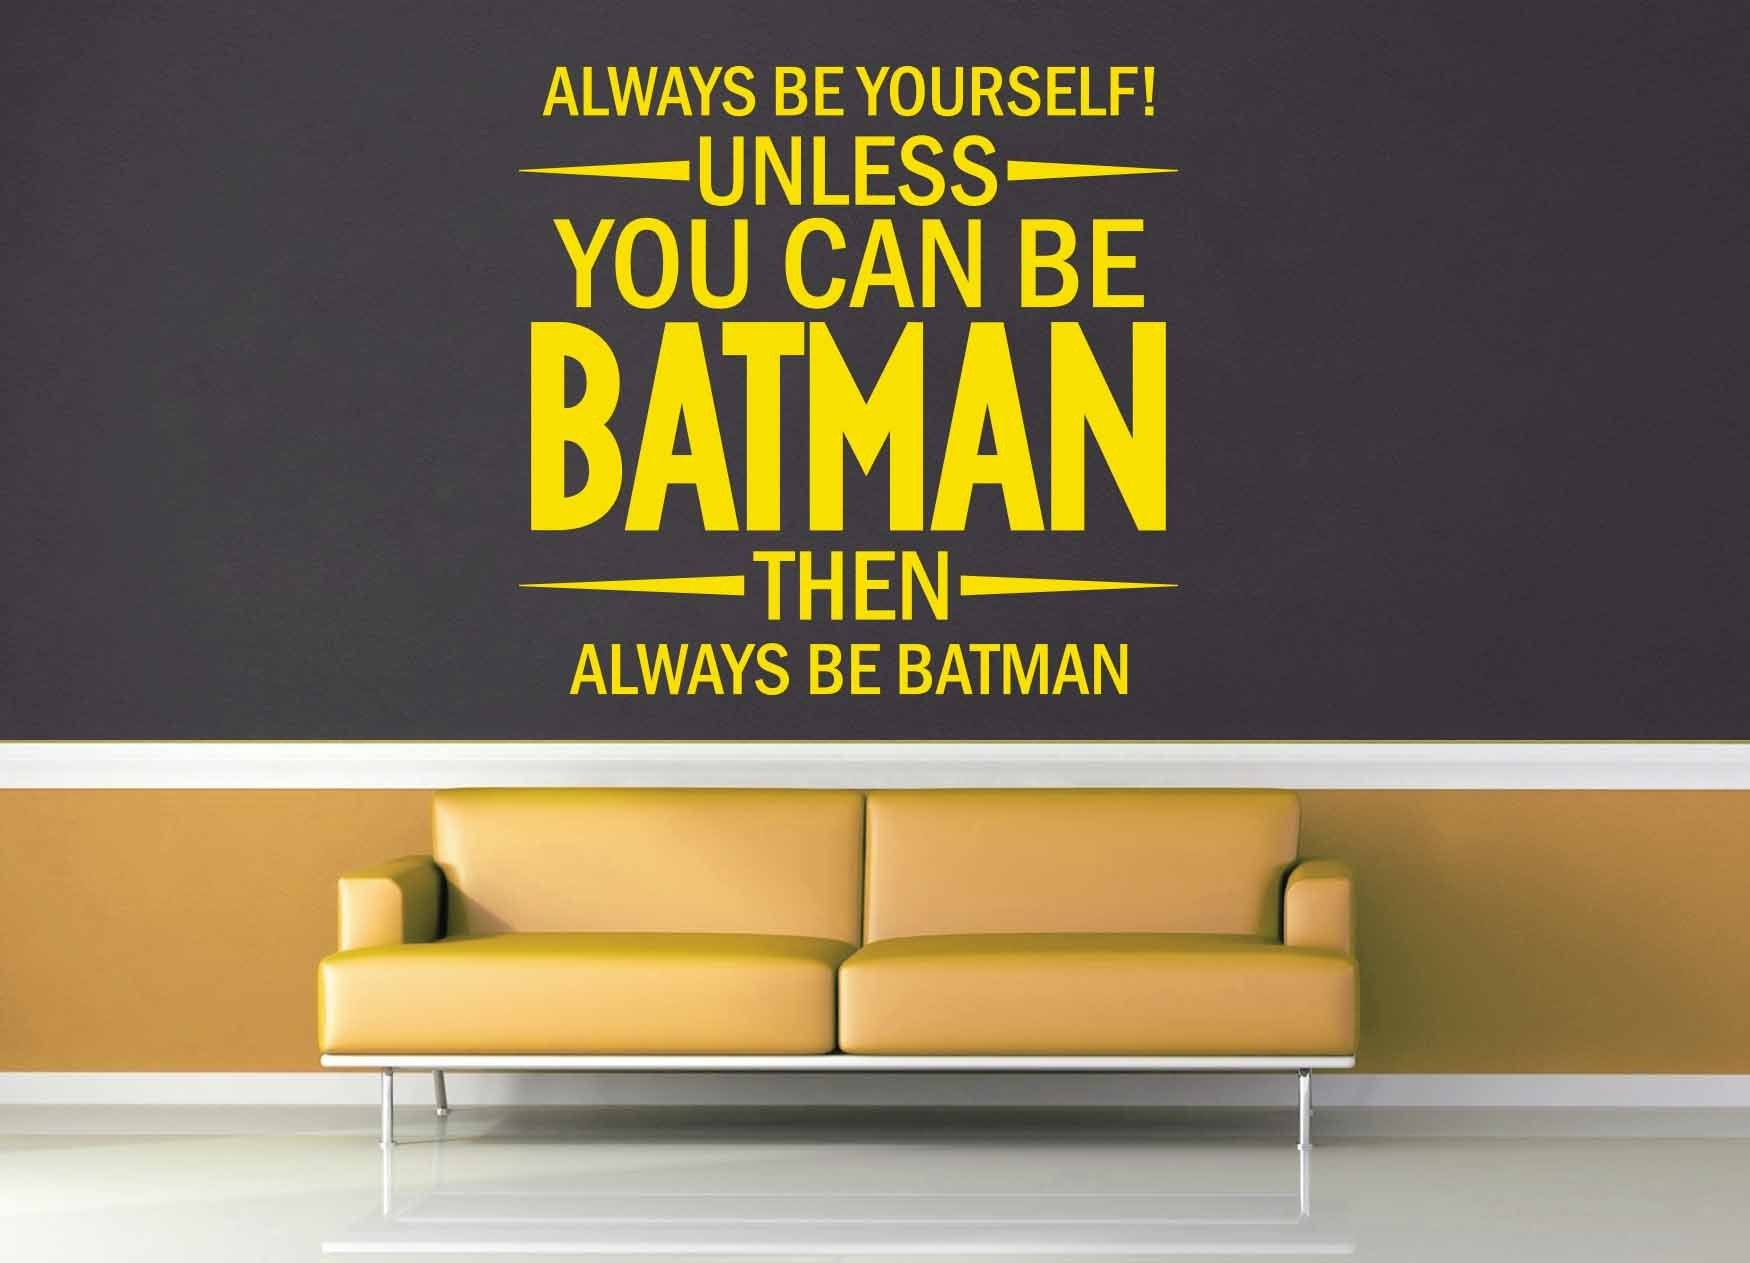 Unless You Can Be Batman - Wall Decal - geekerymade